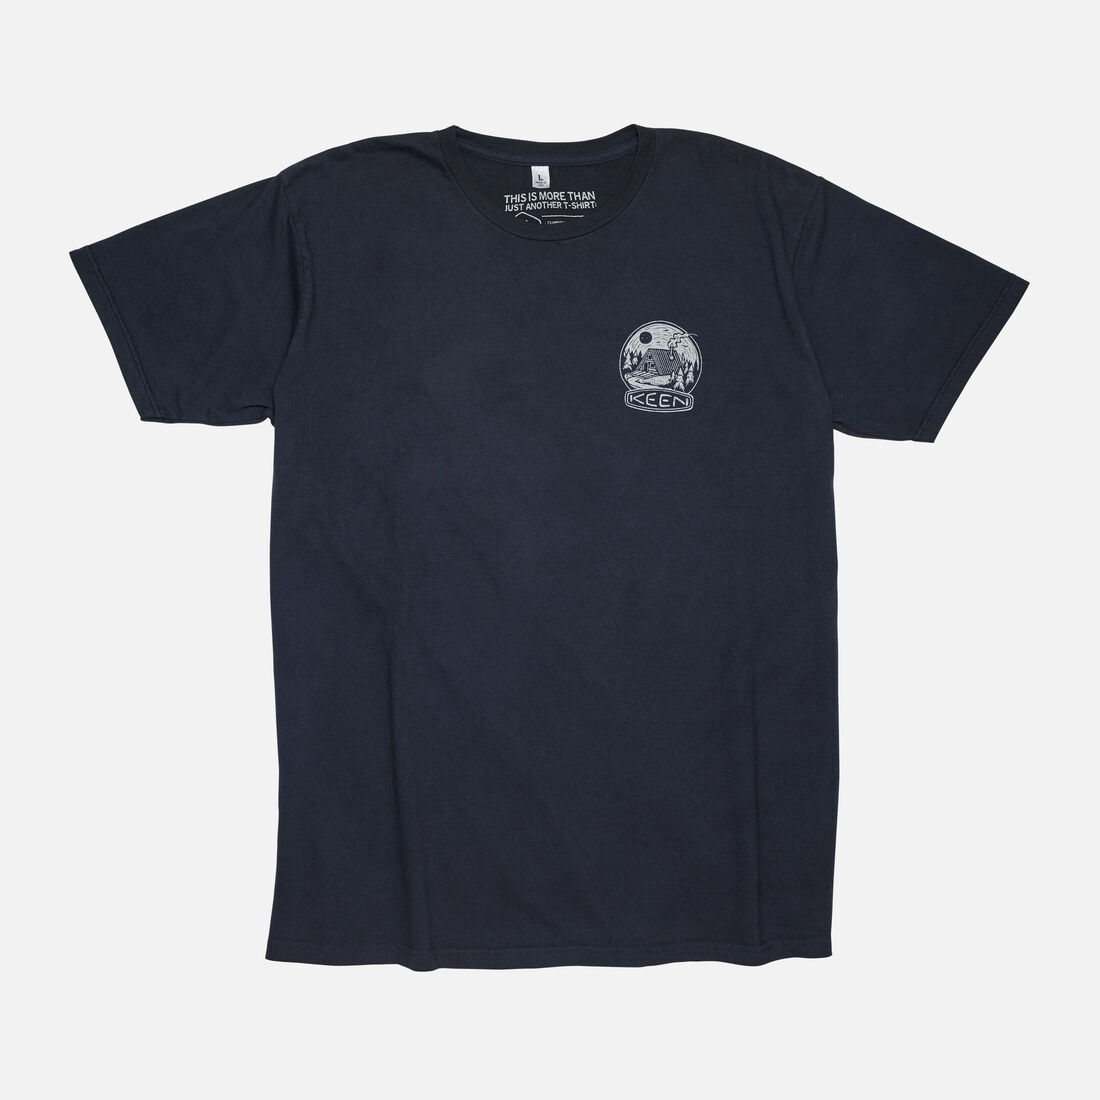 Men's 'Mountains to Sea' T-Shirt in Black - large view.